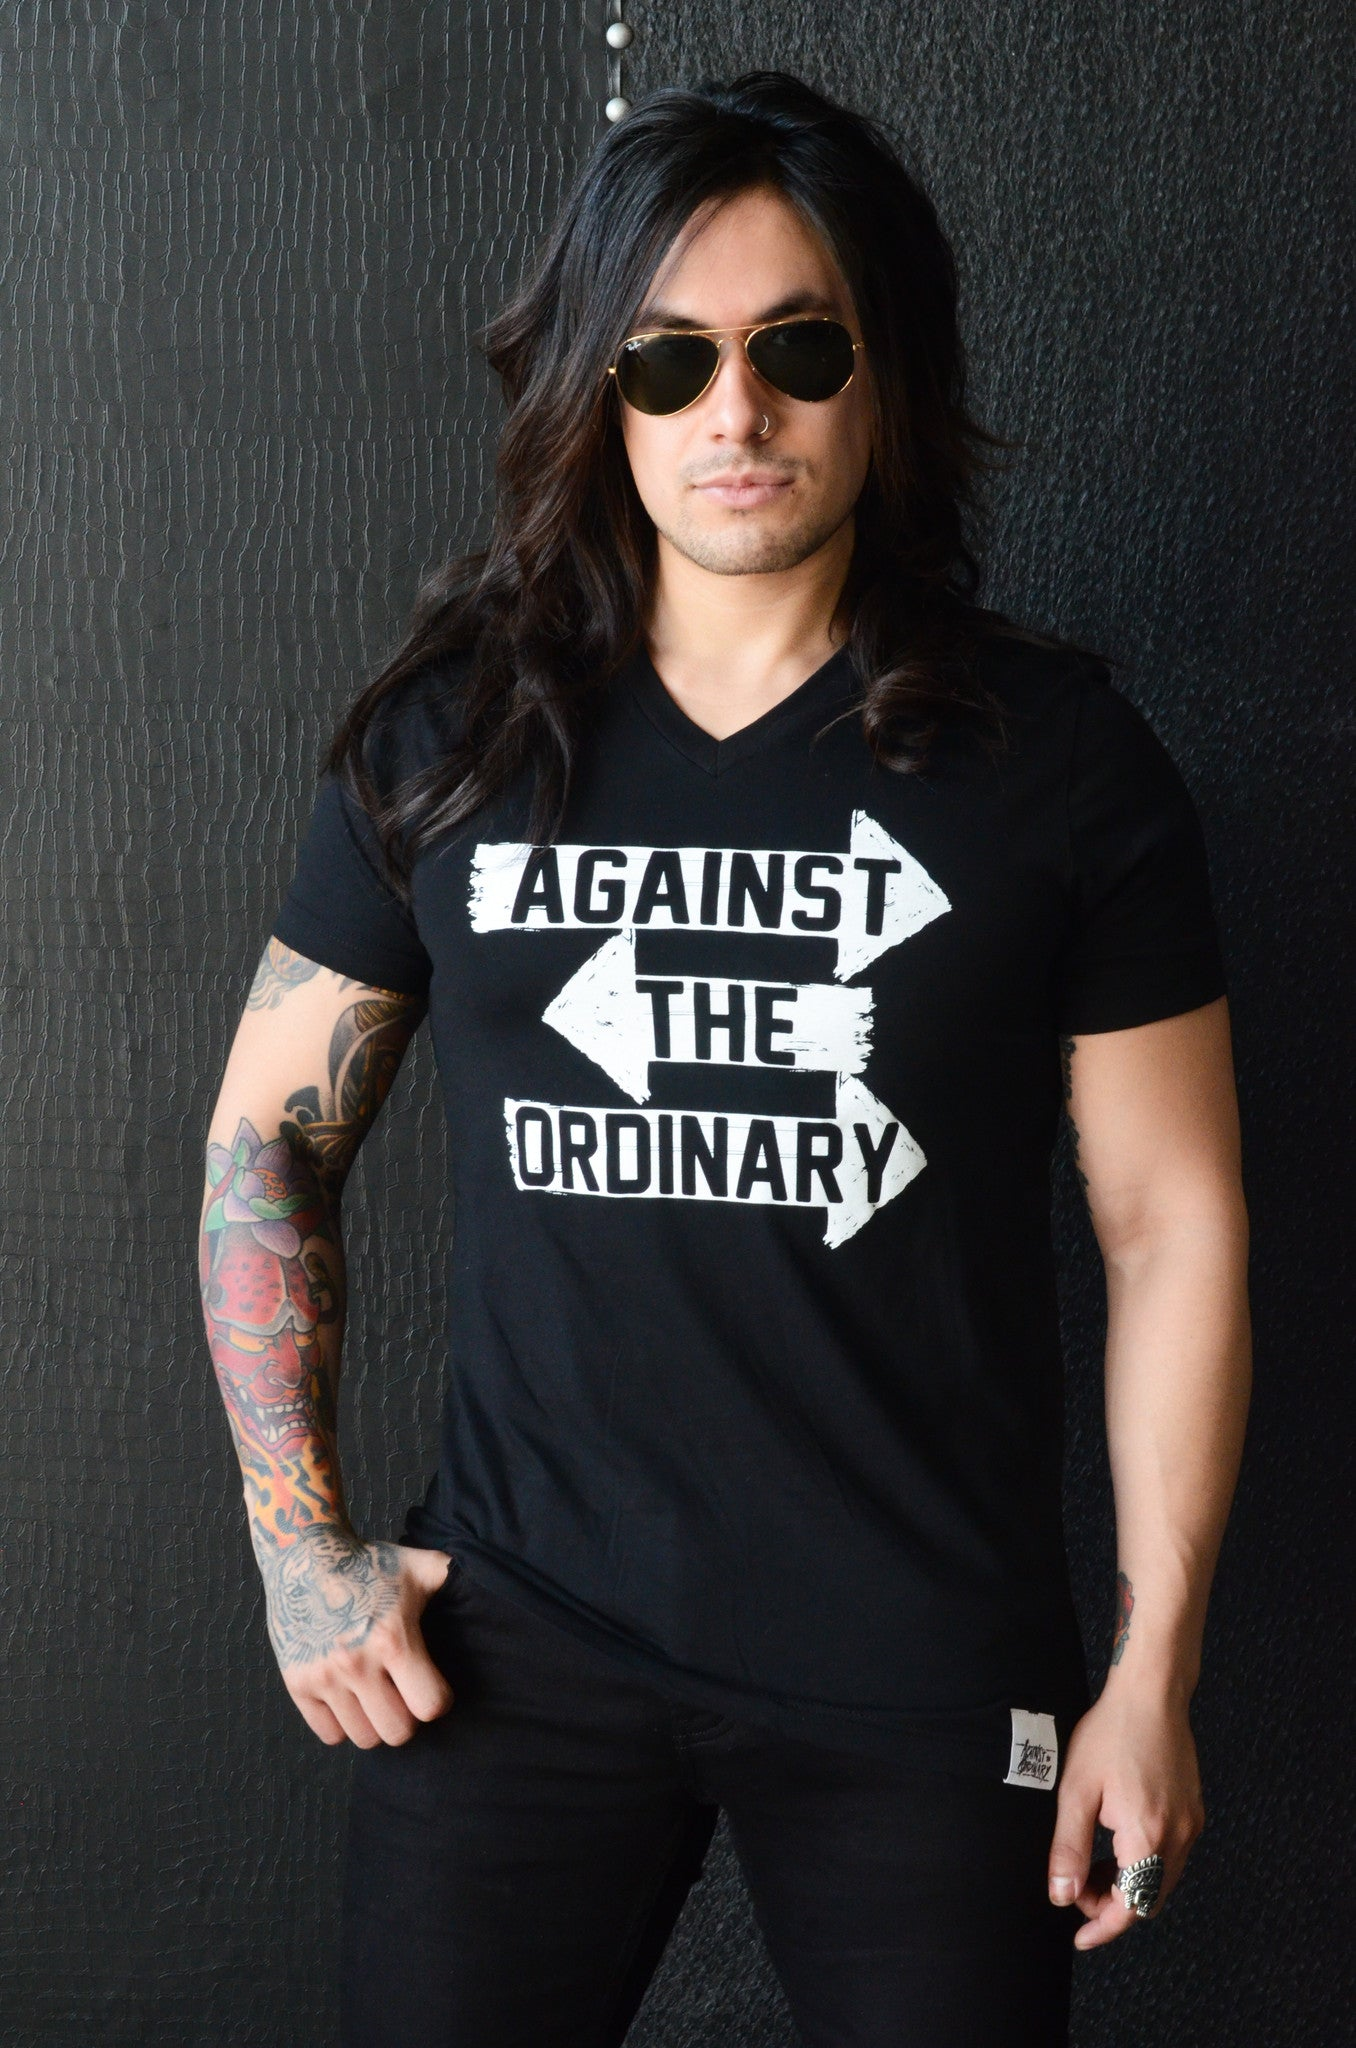 AGAINST THE ORDINARY Men's Short Sleeved V Neck Tee with ARROW Graphic